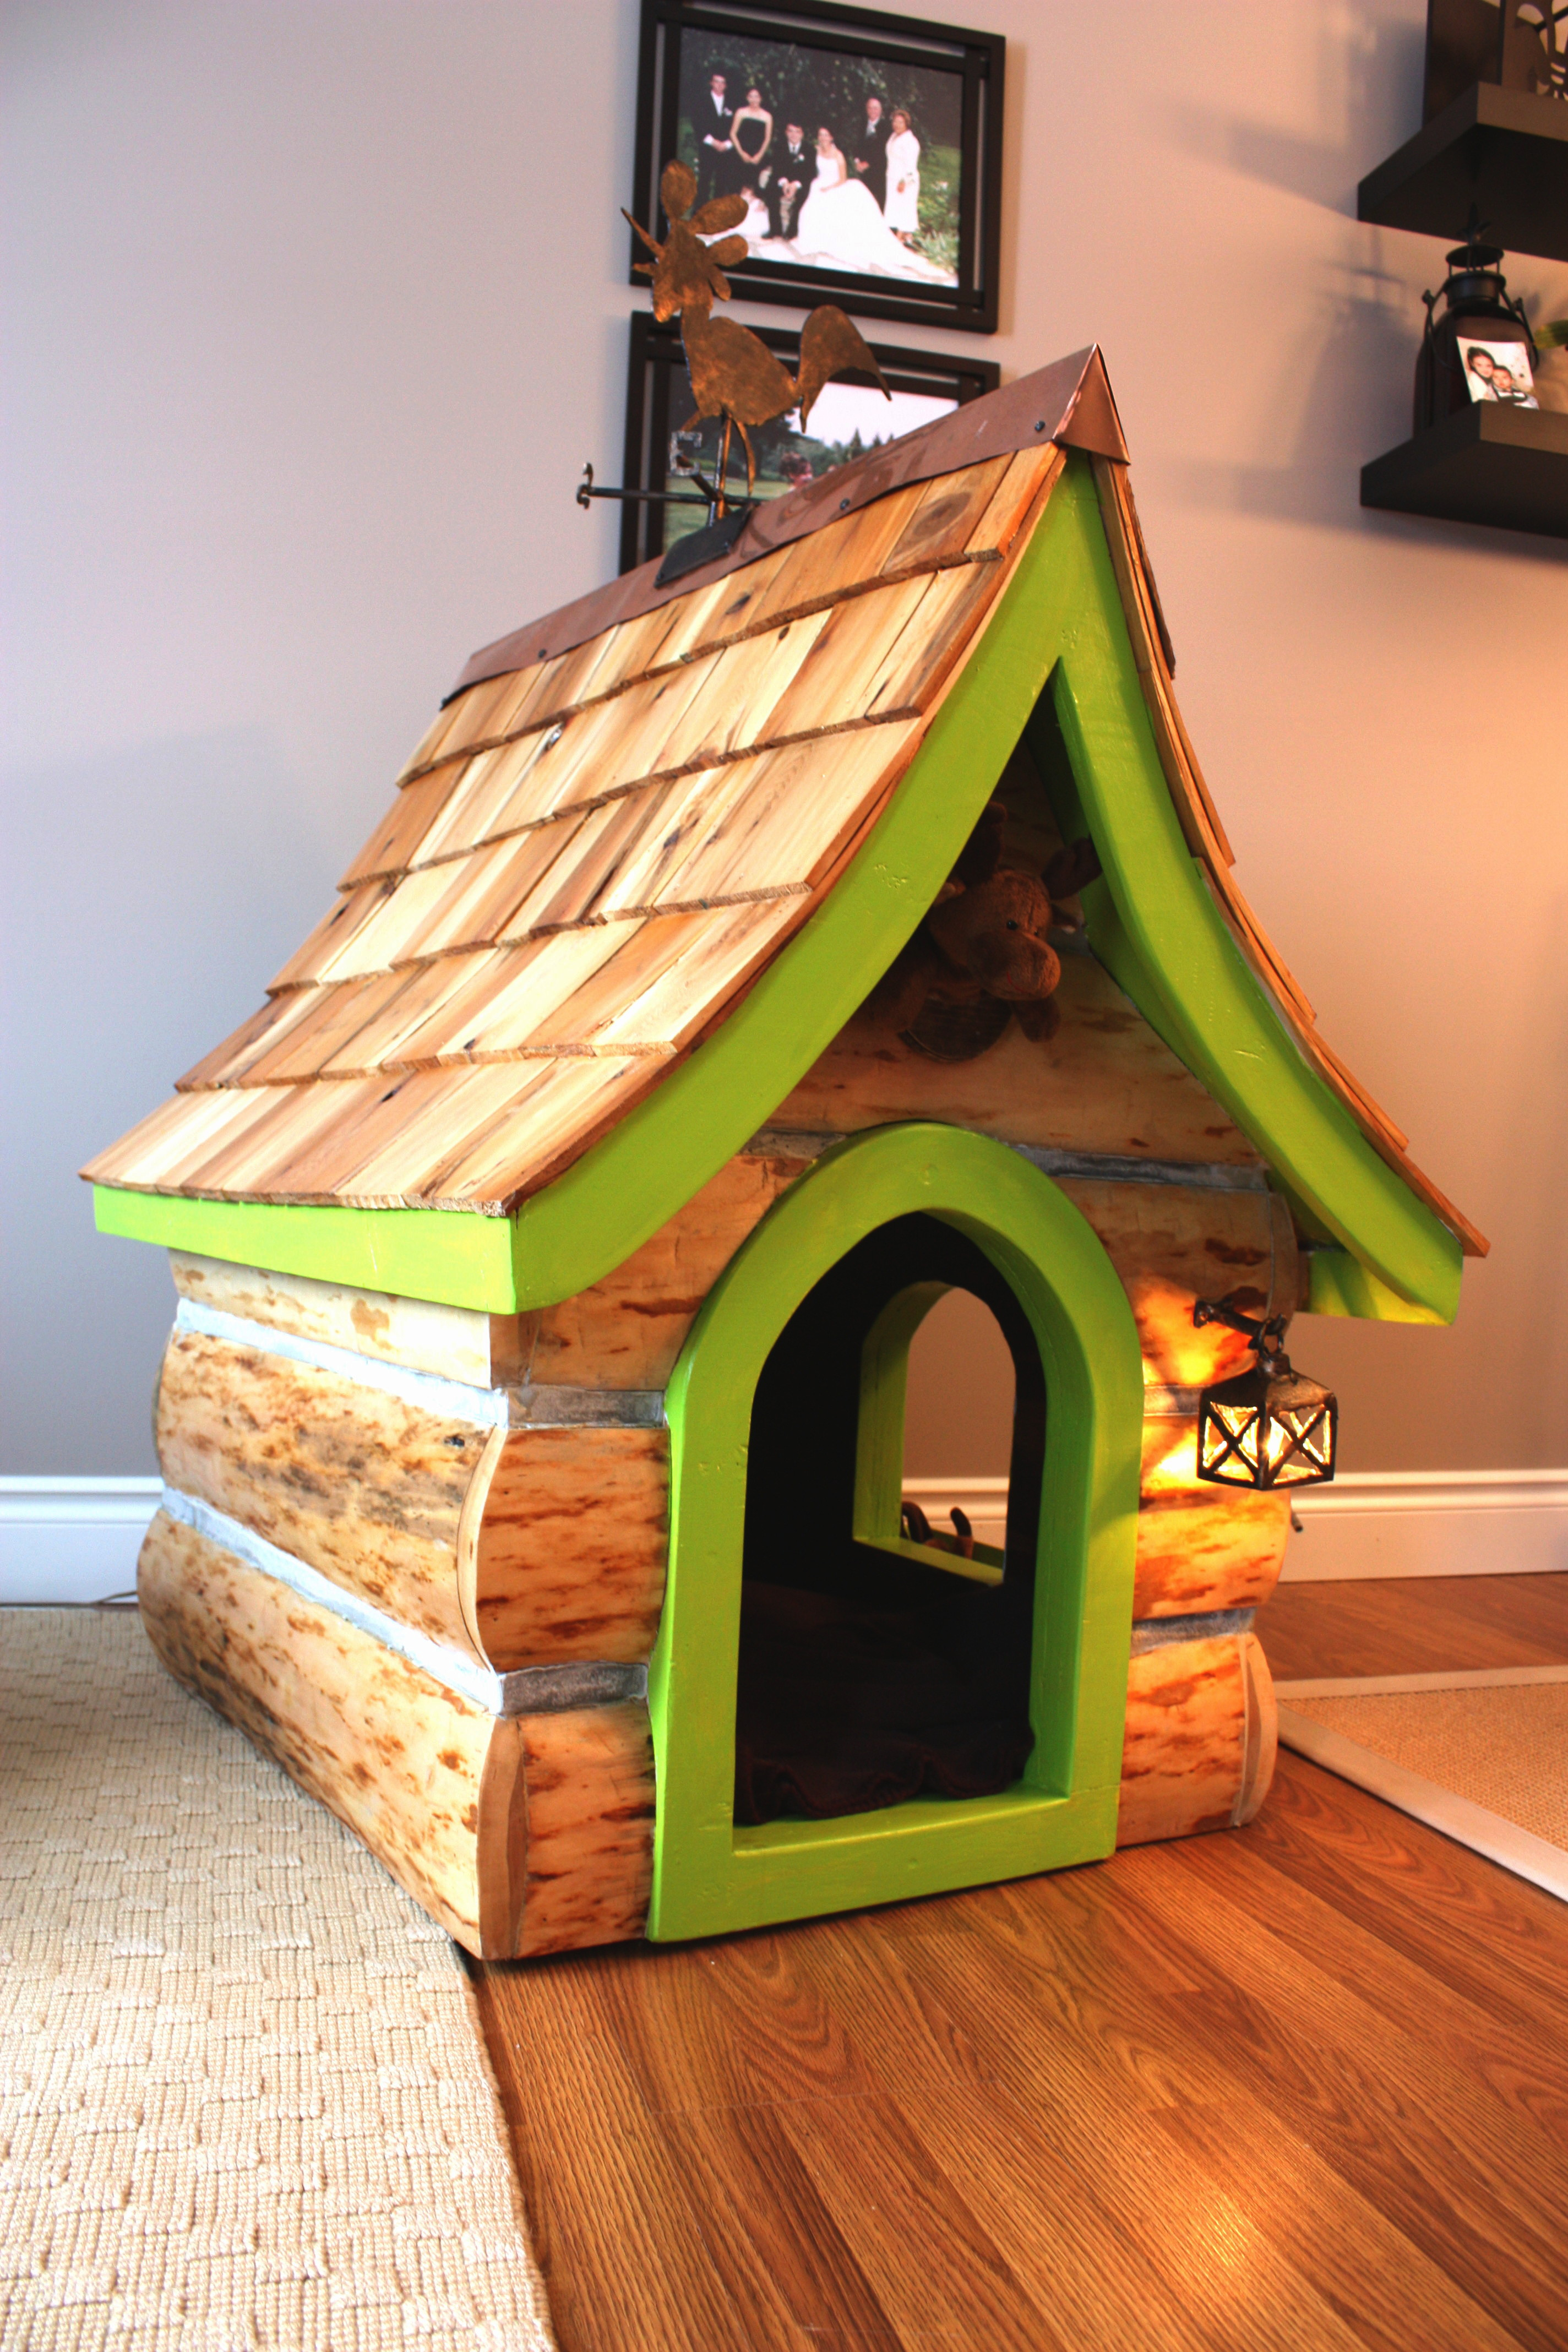 Maggie's log dog house